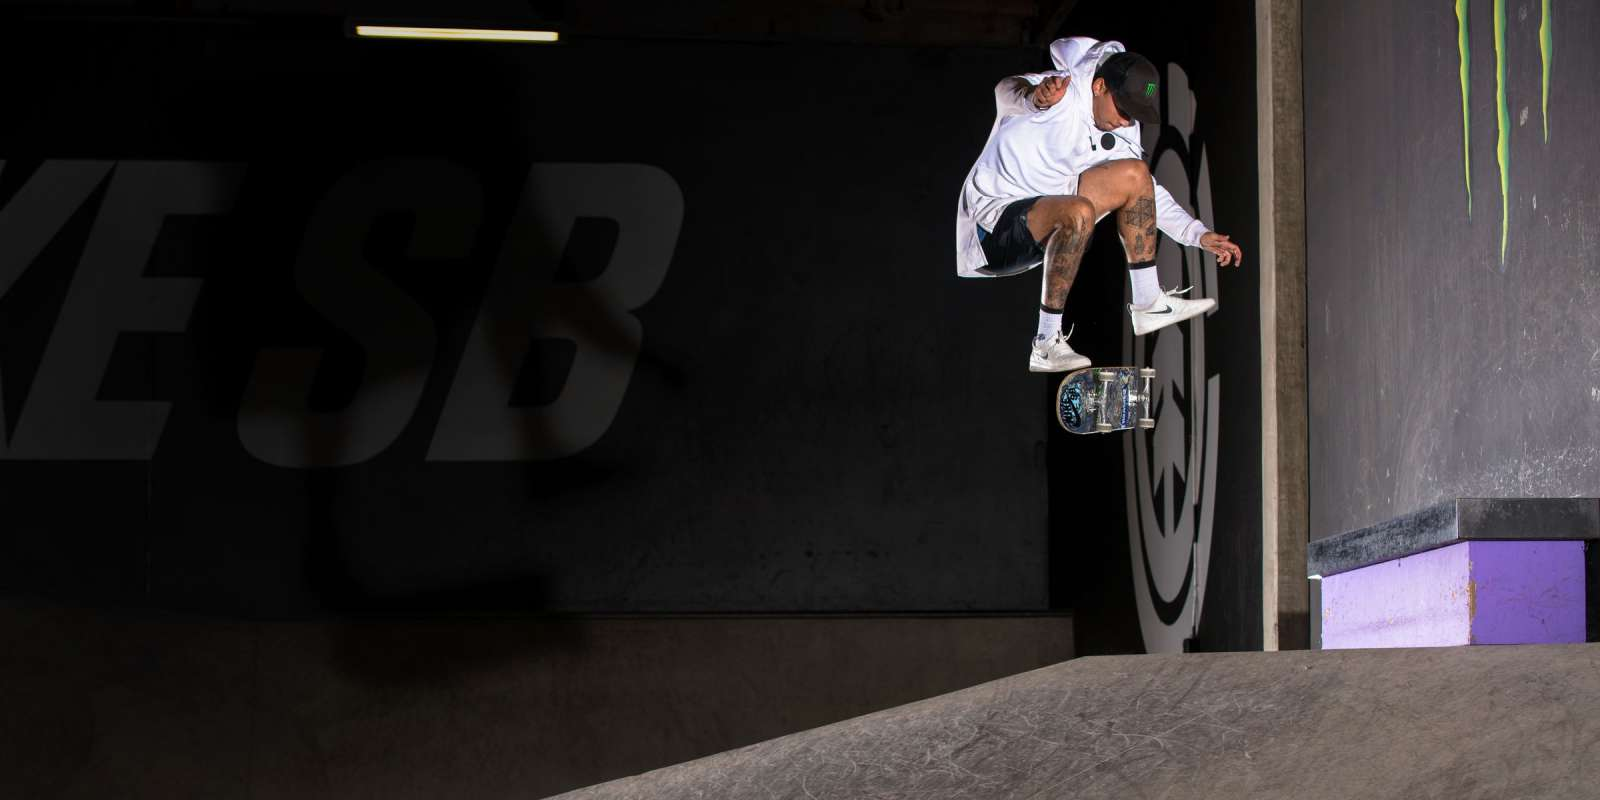 Image Delivery of Nyjah Huston's Q4 Oct-Dec 2017